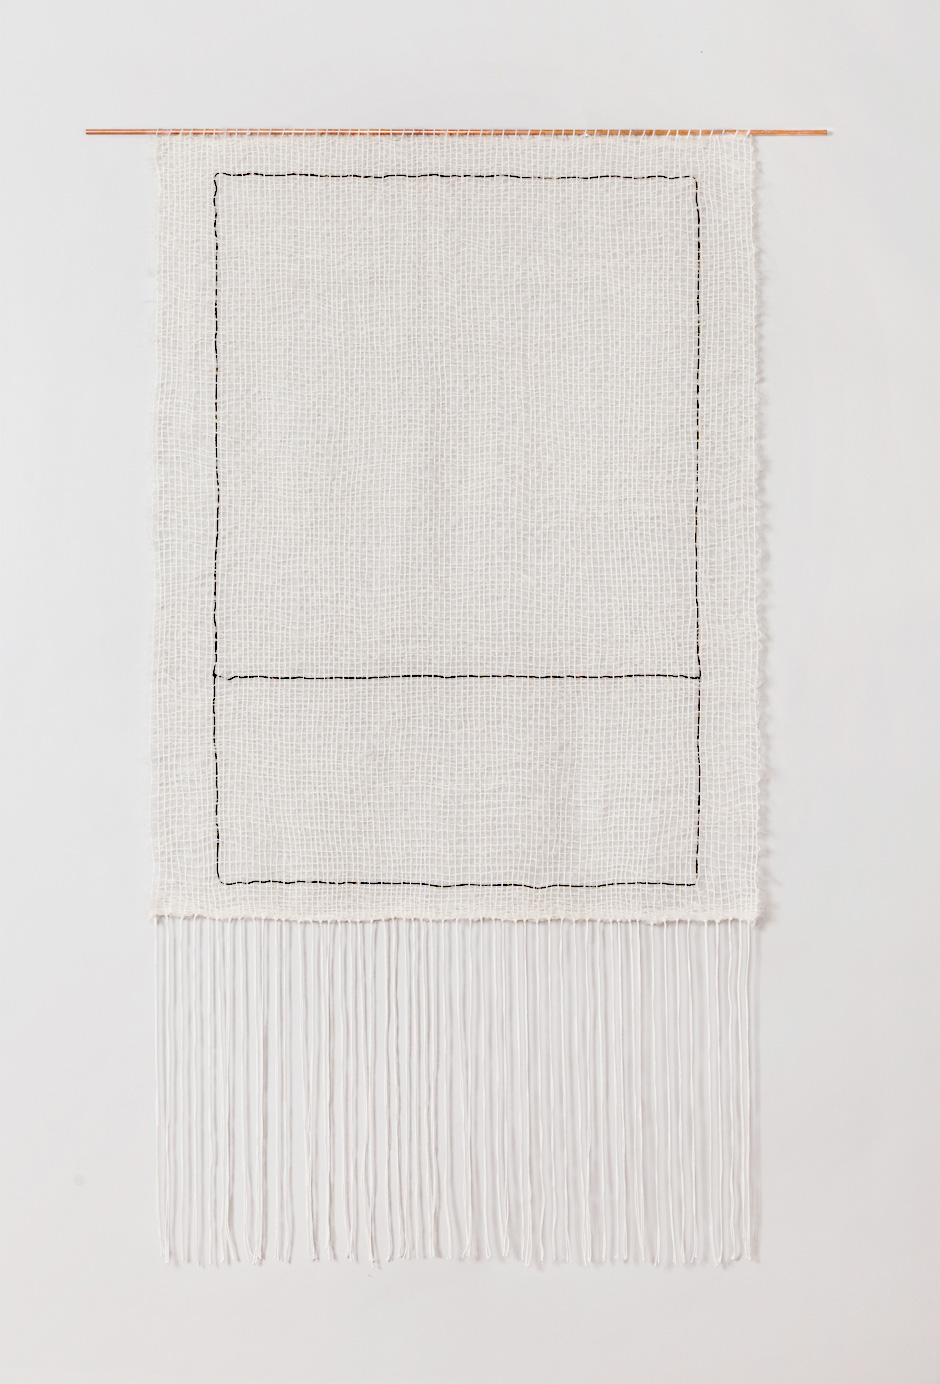 mimi_jung_weaving_2rectangles_1.jpg